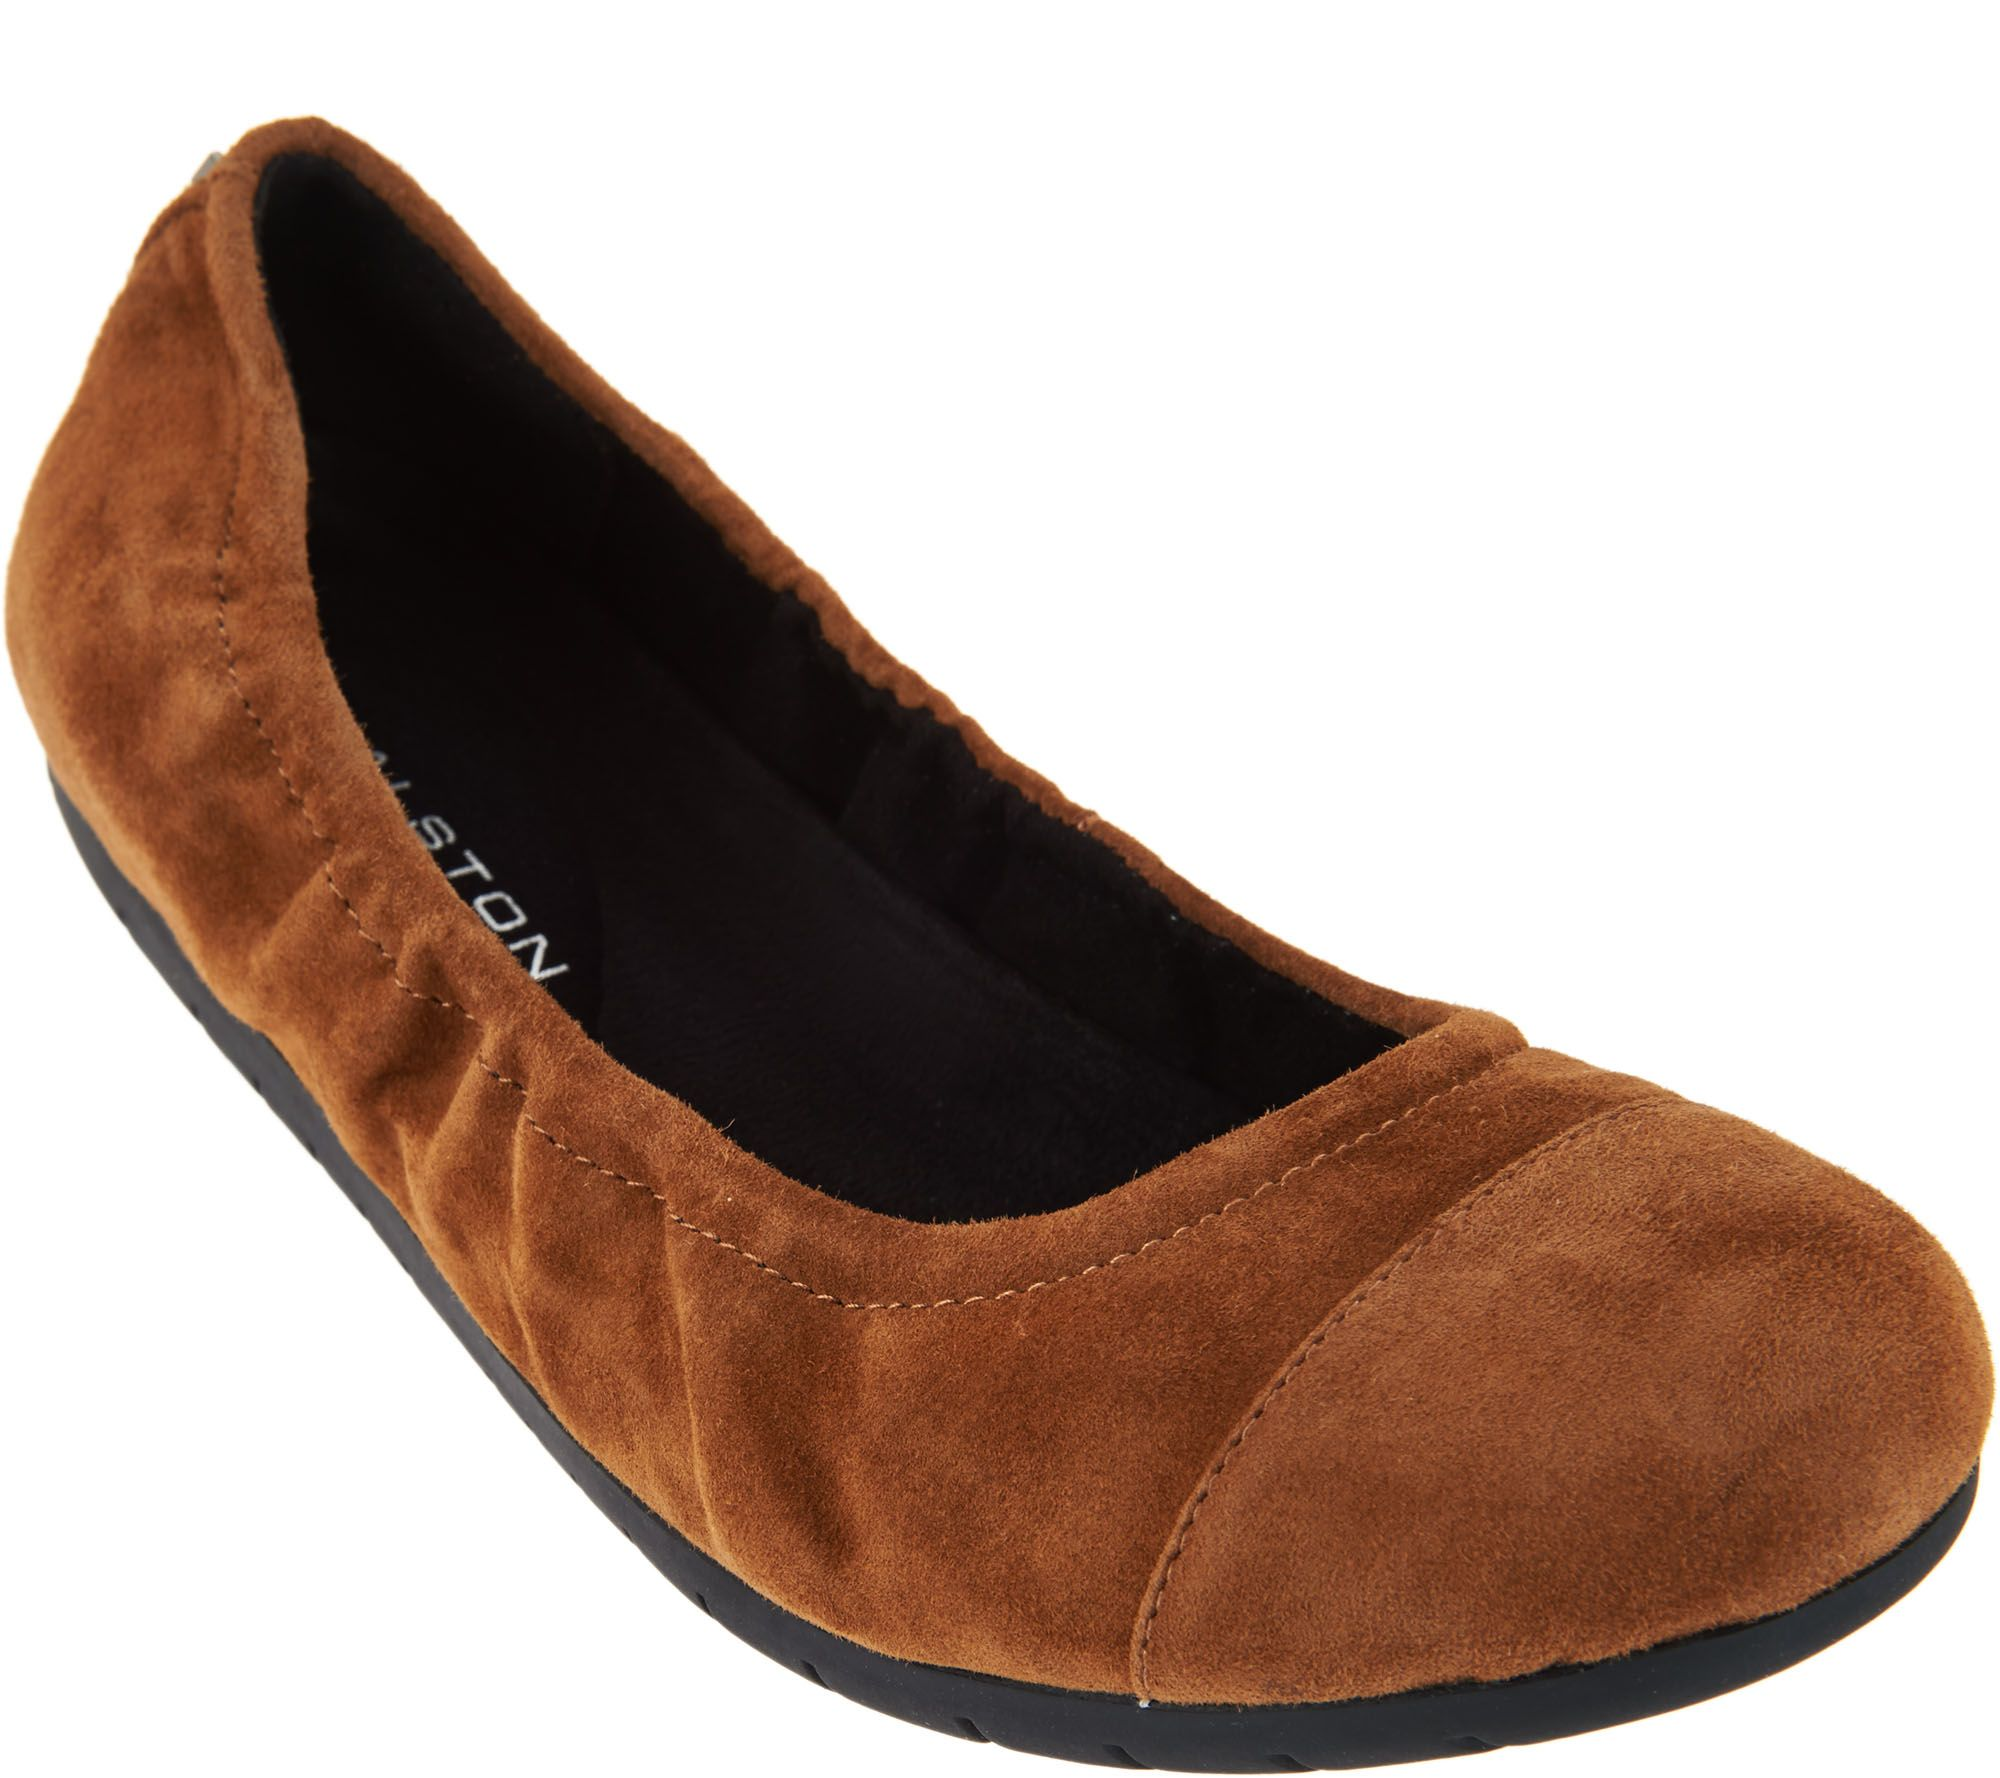 Cheap Marketable New Lower Prices H by Halston Suede Cap-Toe Flats View Sale Online 0eqMZc